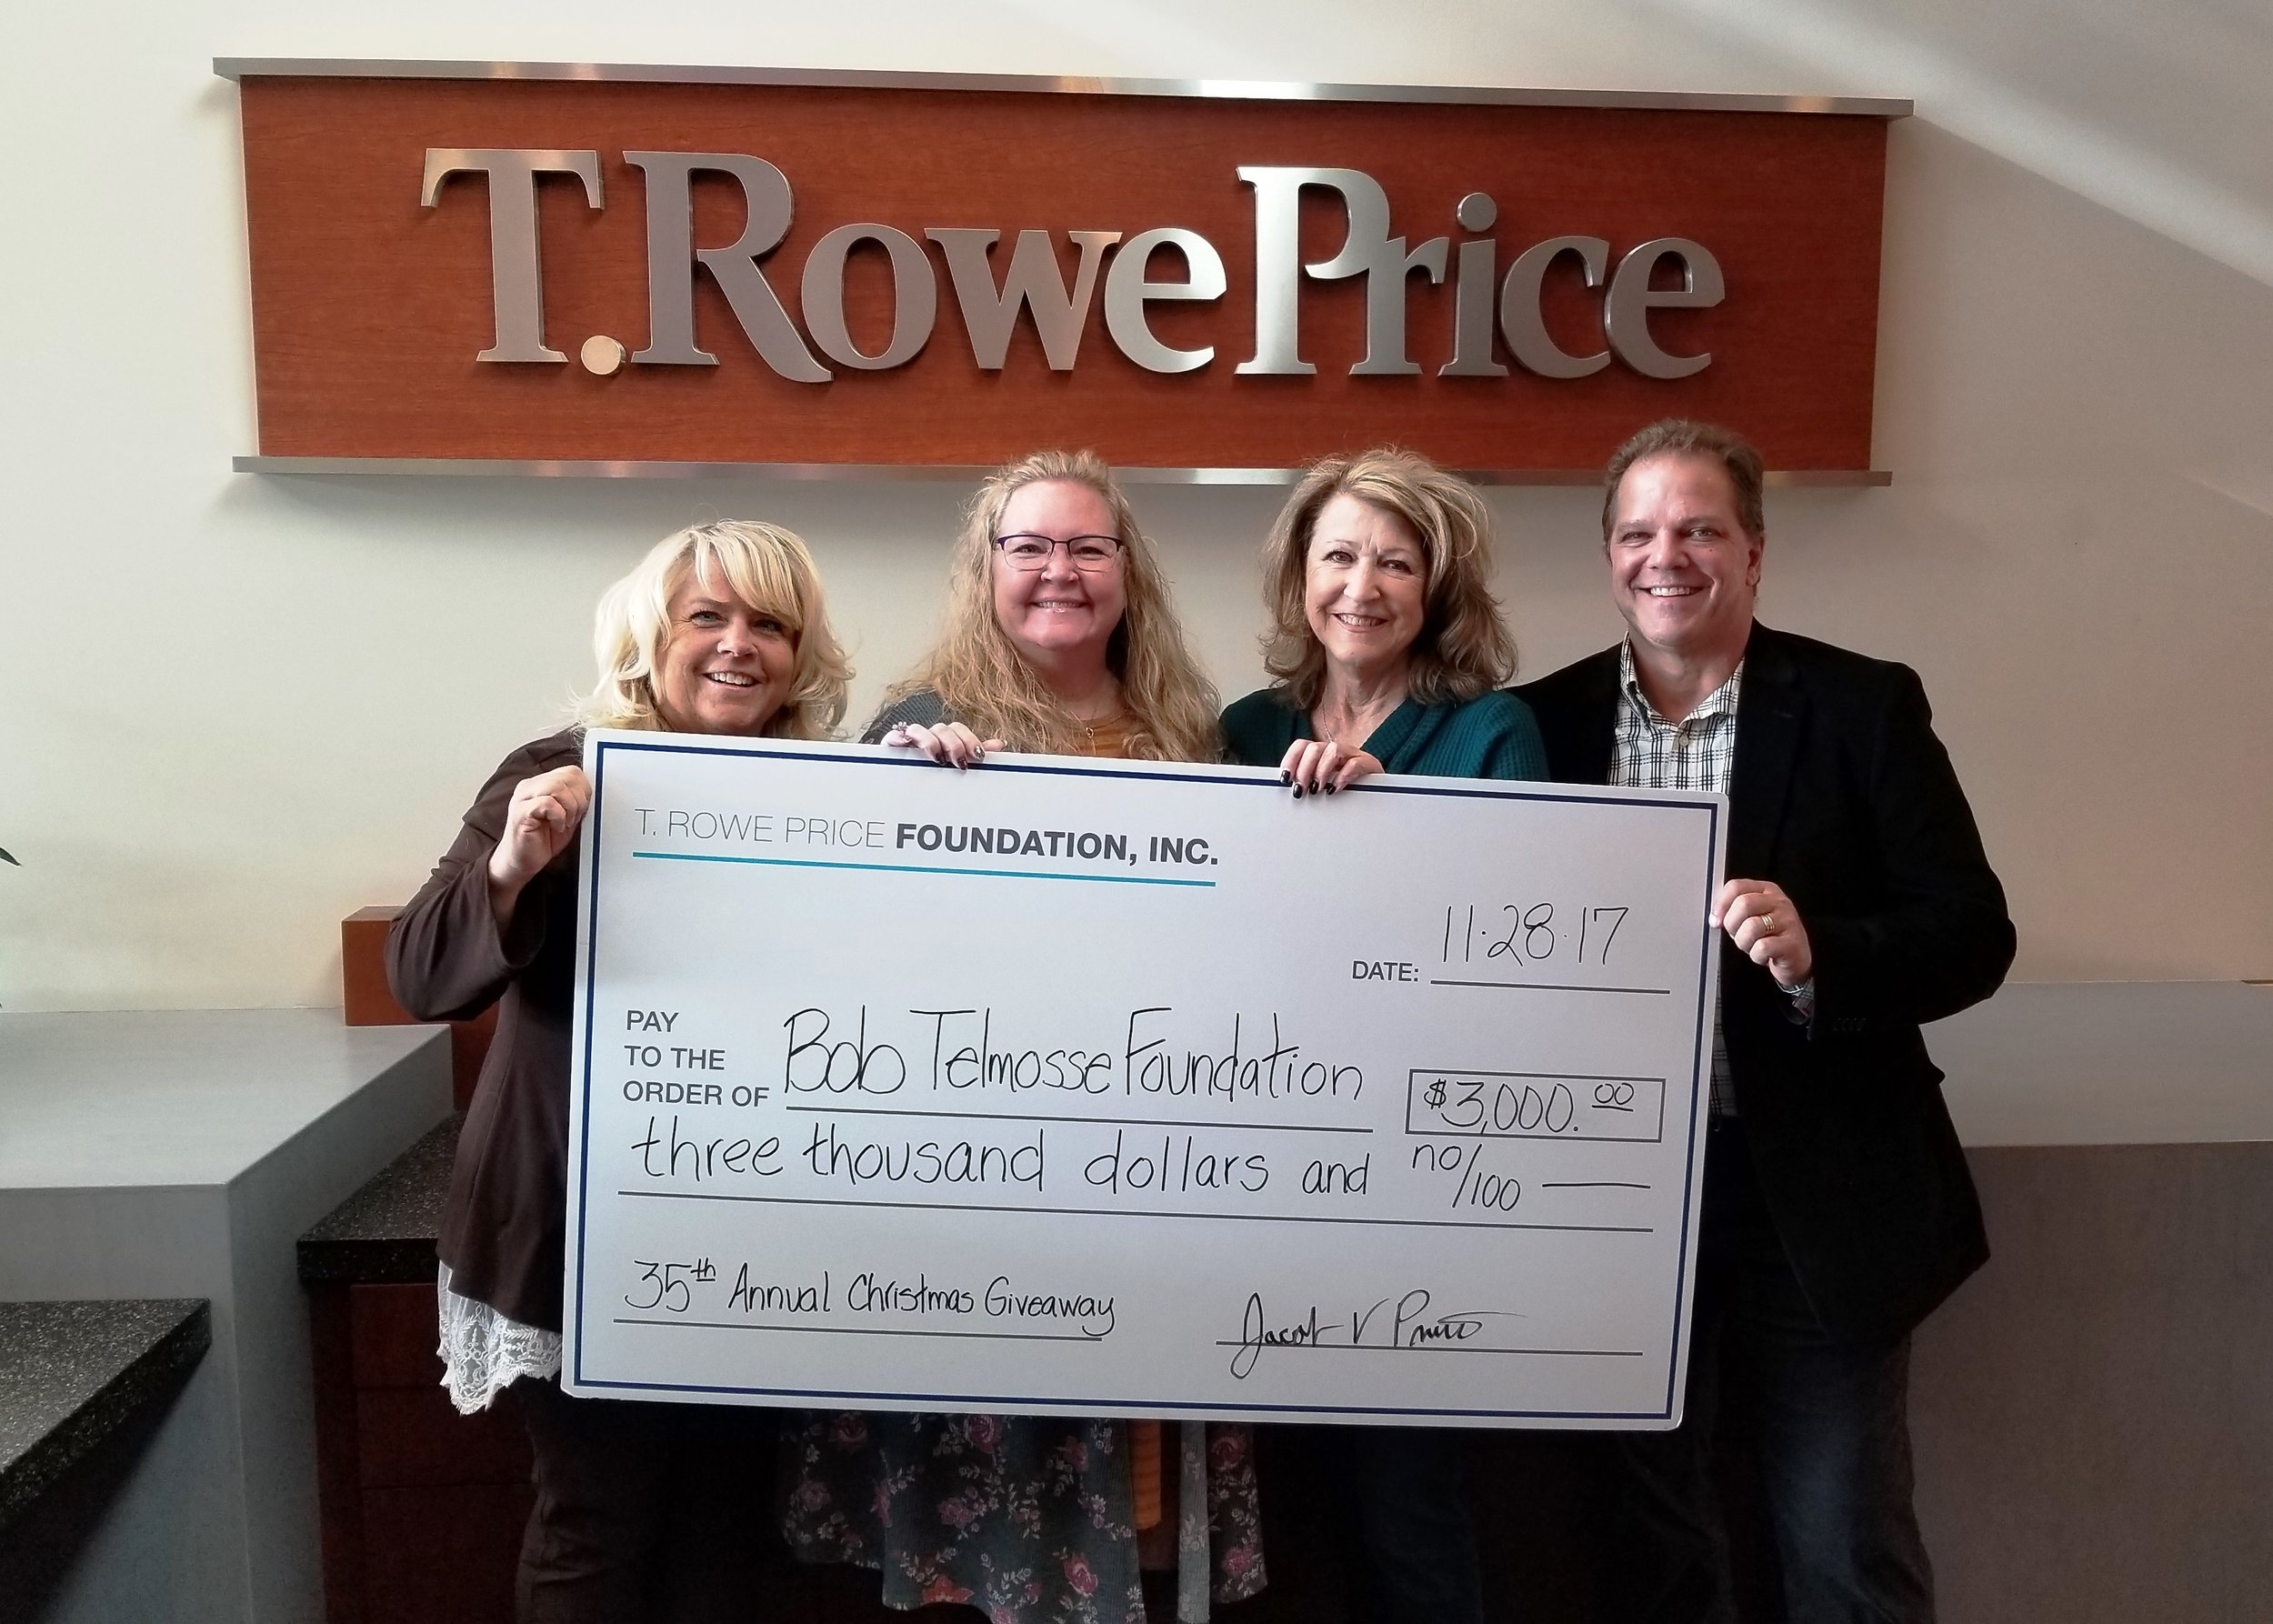 11/28/2017  - Thank you so very much to the  T. Rowe Price Foundation, Inc.  for their generous donation to  The 35th Annual Bob Telmosse Christmas Giveaway .  We appreciate and value your support.  We are so very grateful to be a recipient of a grant from your foundation this year. This money will allow us buy more toys, books and bikes for the kids at this years event.